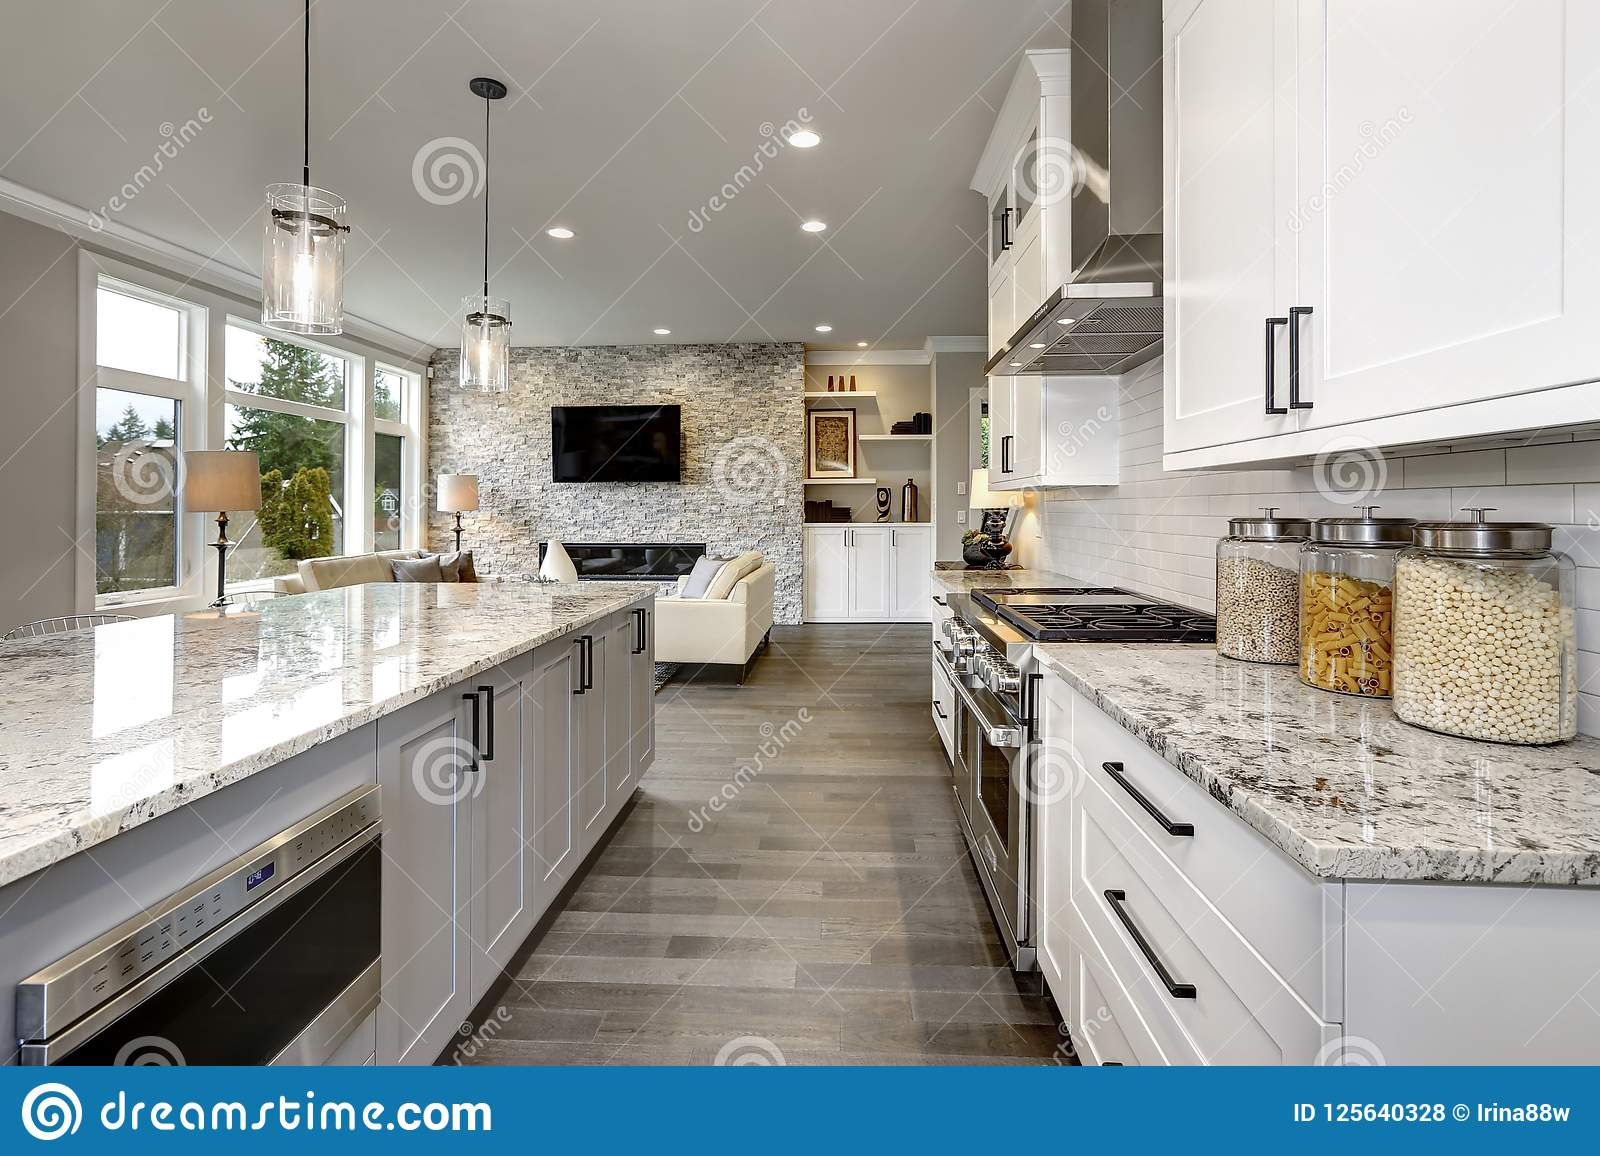 Beautiful kitchen in luxury home modern interior with island and stainless steel chairs